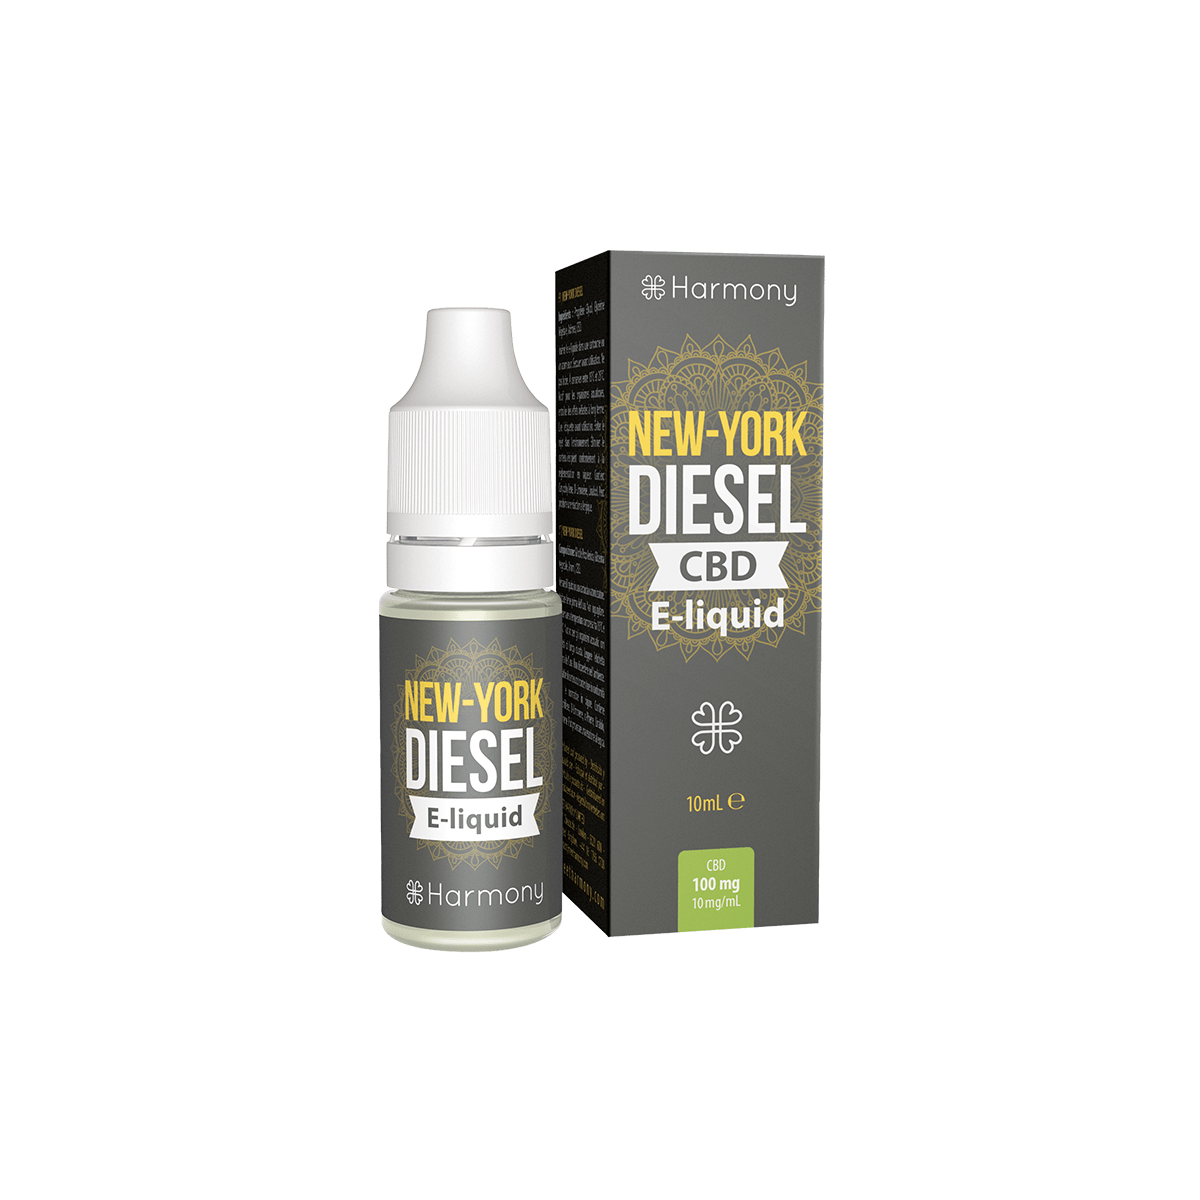 CBD Liquid | HARMONY New York Diesel | Menge 10 ml - 600 mg